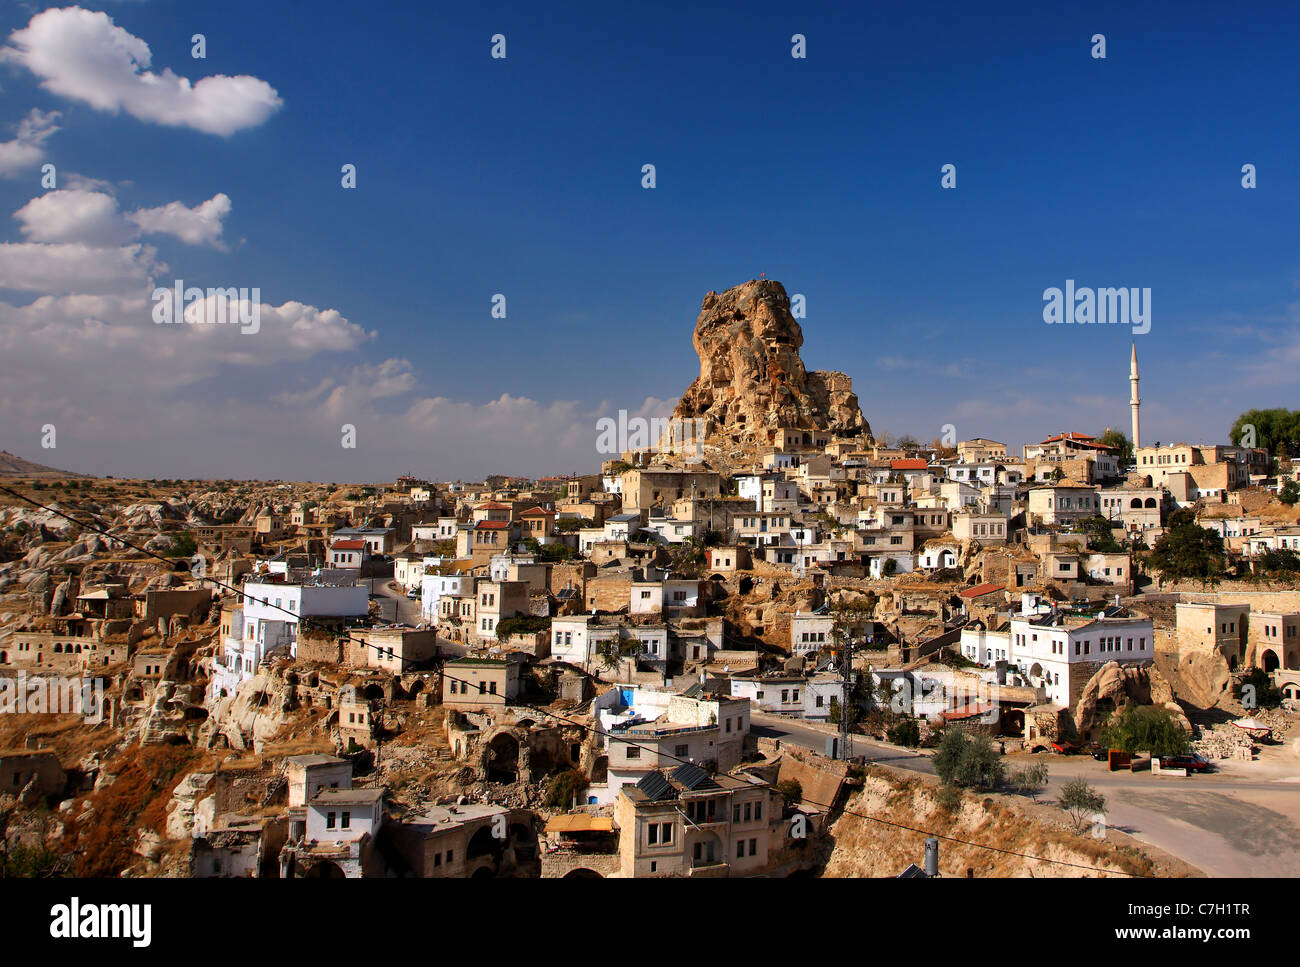 Ortahisar (it means 'middle castle') is one of the 2 natural rocky 'castles' in the region of Cappadocia. - Stock Image